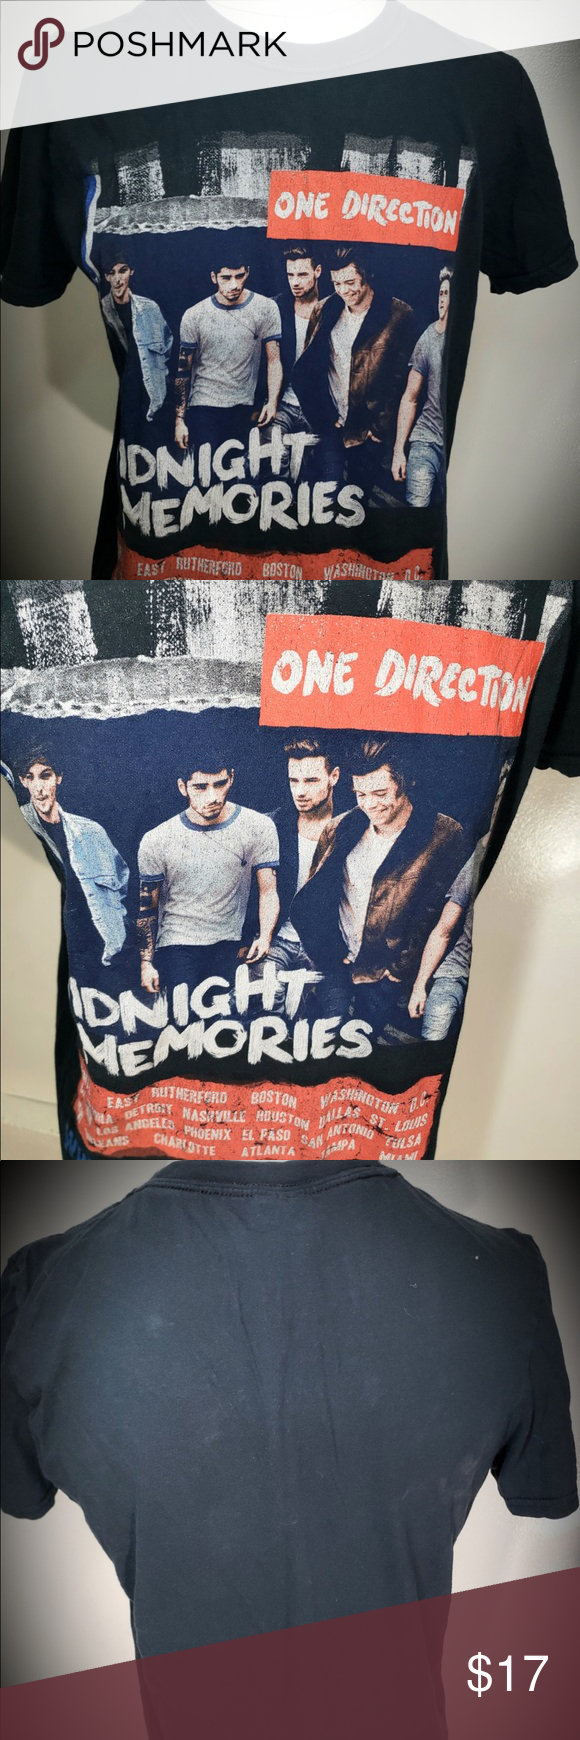 One Direction: 2014 Tour Shirt ONE DIRECTION 2014 Midnight Memories- Where We Are Tour Concert T-shirt. Pre-owned and overall good condition. Tops Tees - Short Sleeve #onedirection2014 One Direction: 2014 Tour Shirt ONE DIRECTION 2014 Midnight Memories- Where We Are Tour Concert T-shirt. Pre-owned and overall good condition. Tops Tees - Short Sleeve #onedirection2014